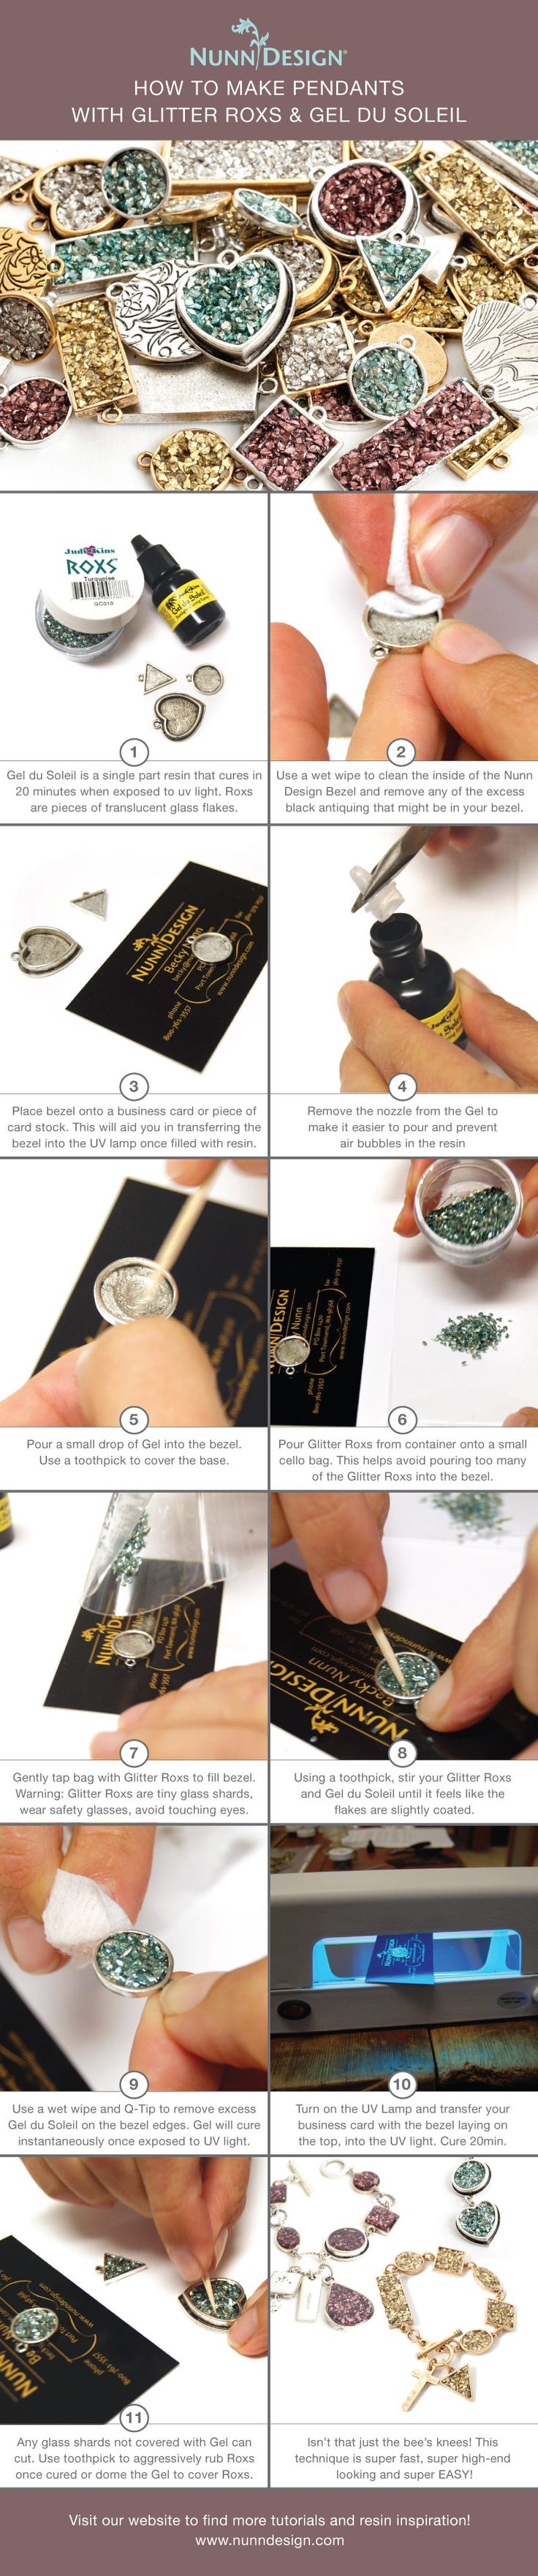 How to Make Pendants with Glitter Roxs & Gel du Soleil to create a Faux Druzy look! Gel du Soleil is a UV light sensitive resin that cures in 20 minutes when exposed to UV light. Because it is UV light sensitive, all aspects of the Gel du Soleil MUST be exposed to UV light in order for a piece to cure. This makes Glitter Roxs perfect to use since they are small pieces of translucent glass flakes. Because of their translucent quality, they fit the necessary restriction of curing success…